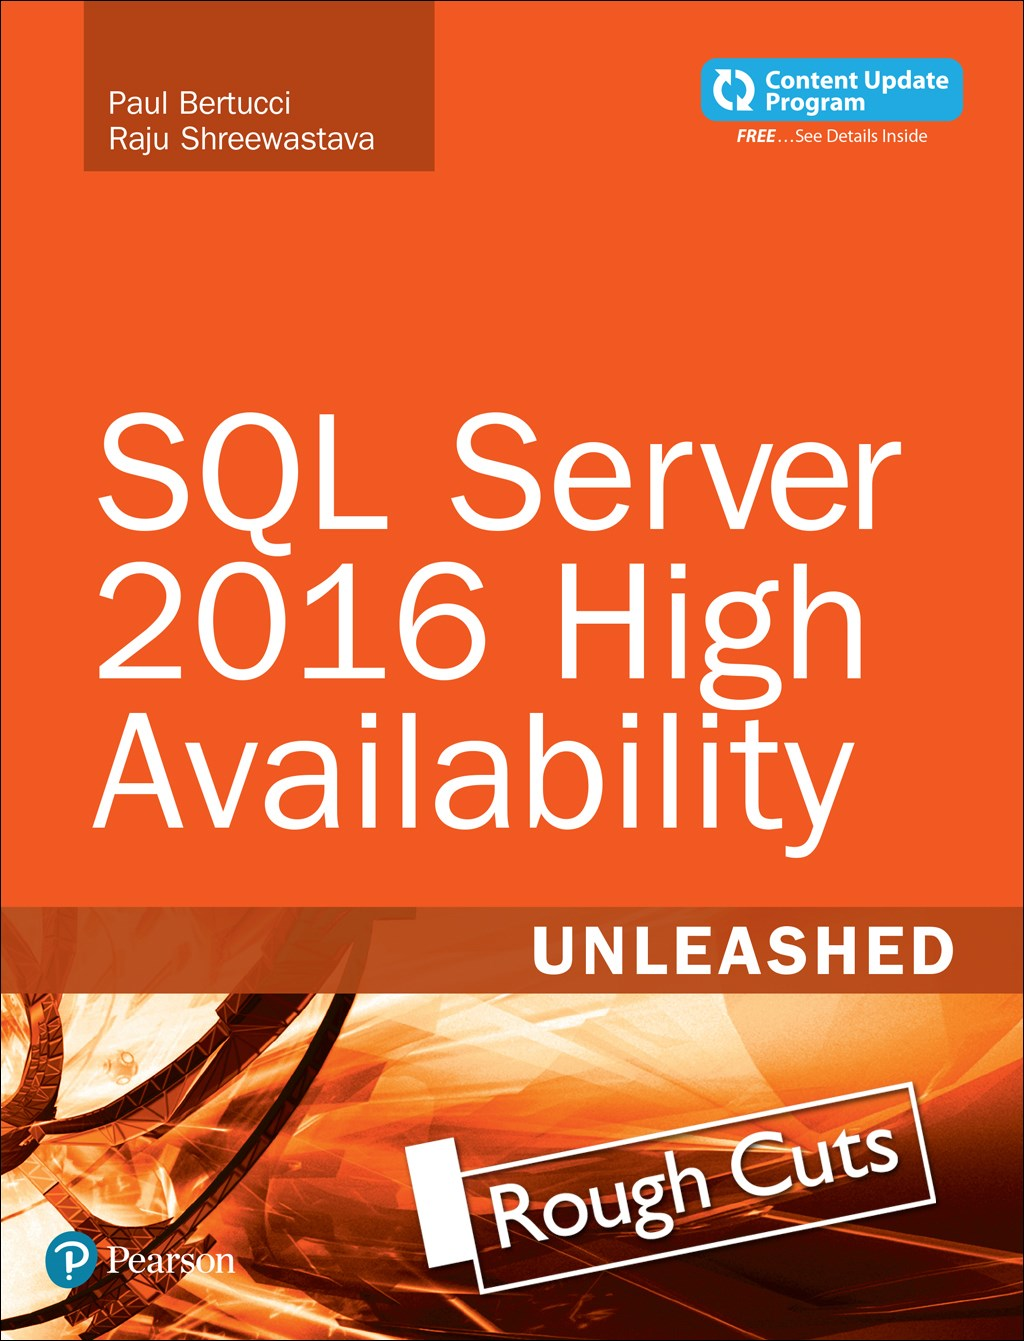 SQL Server 2016 High Availability Unleashed  (includes Content Update Program), Rough Cuts